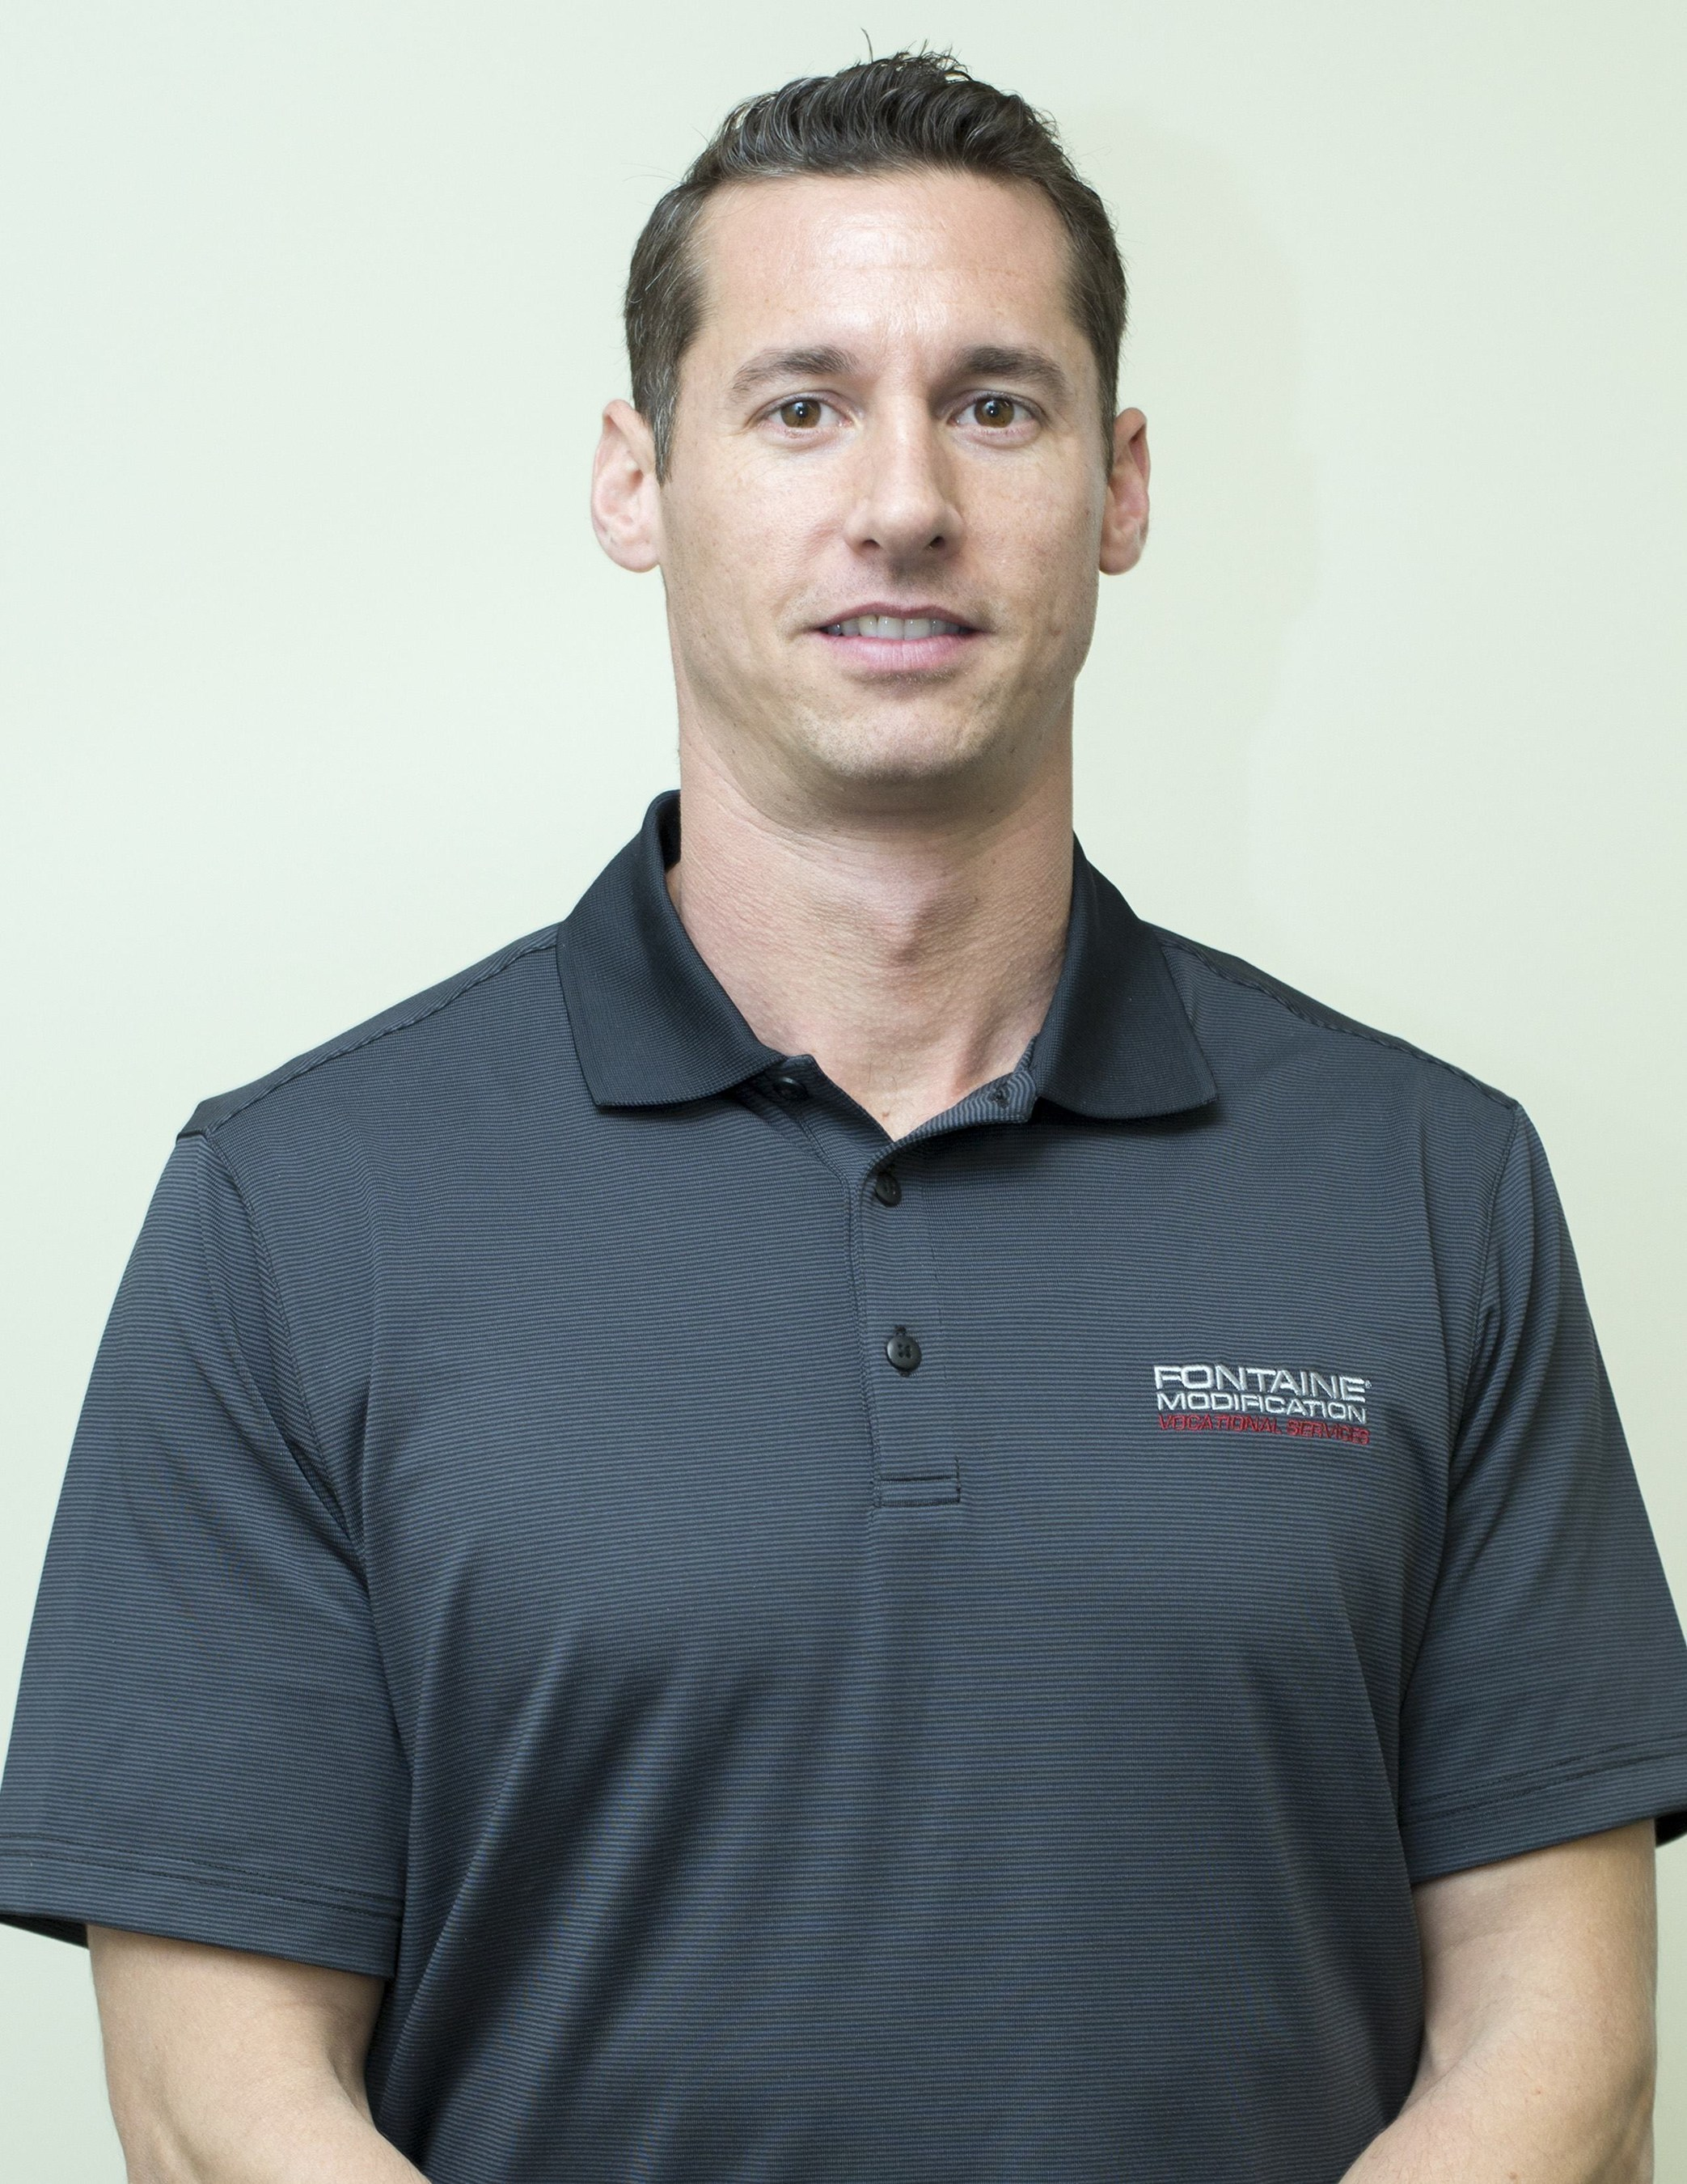 Fontaine Modification Vocational Services Hires Brett Harlan as Vice President of Sales